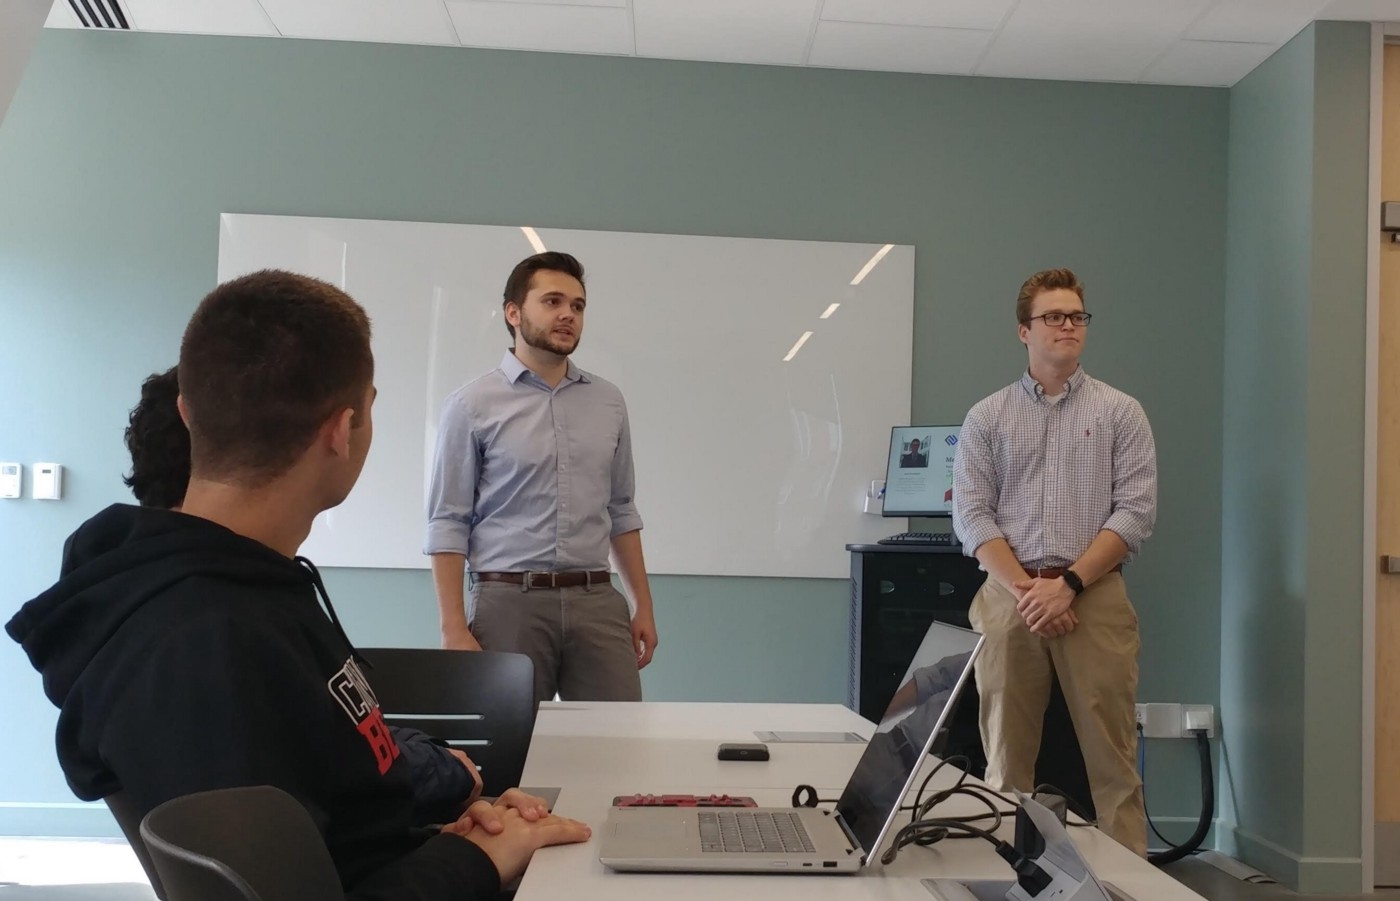 Jack Gilcrest and Ashton Barger standing in a University of Cincinnati Classroom